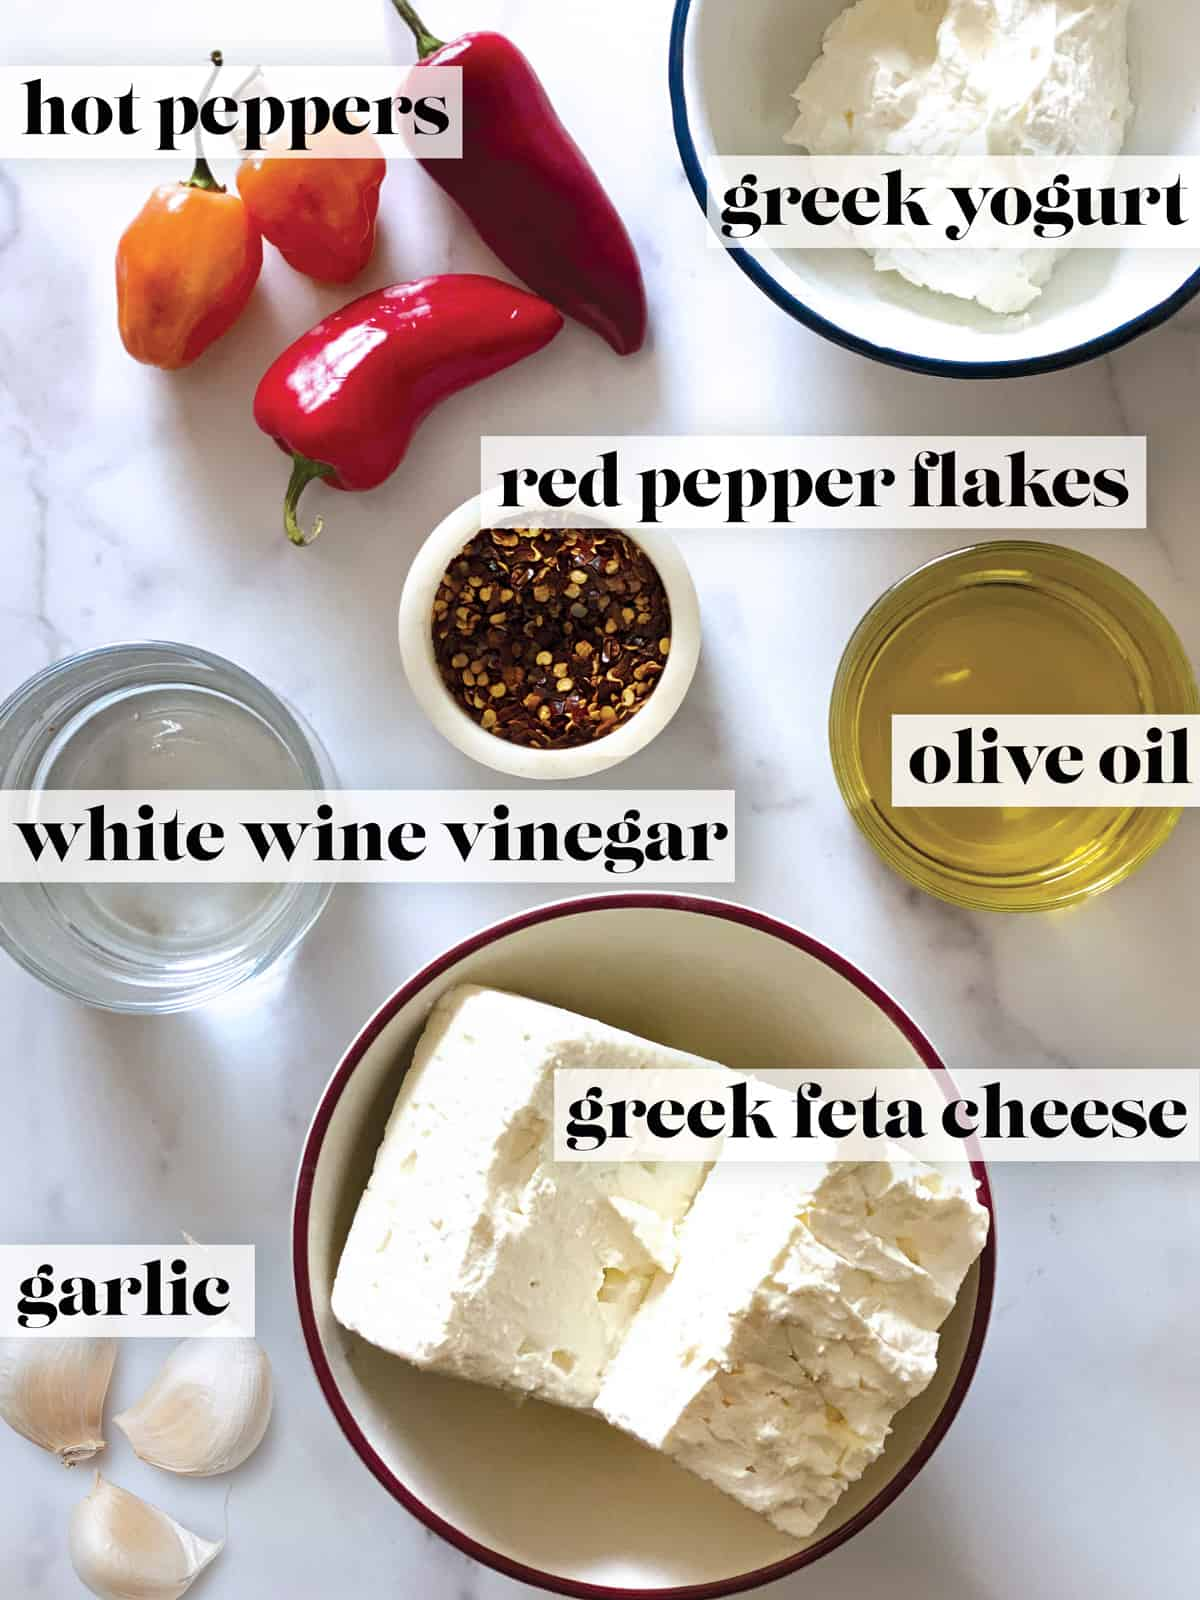 Hot red peppers, a bowl with yogurt, a container with pepper flakes, a glass with olive oil and a glass with vinegar, a bowl with feta, and a garlic cloves.